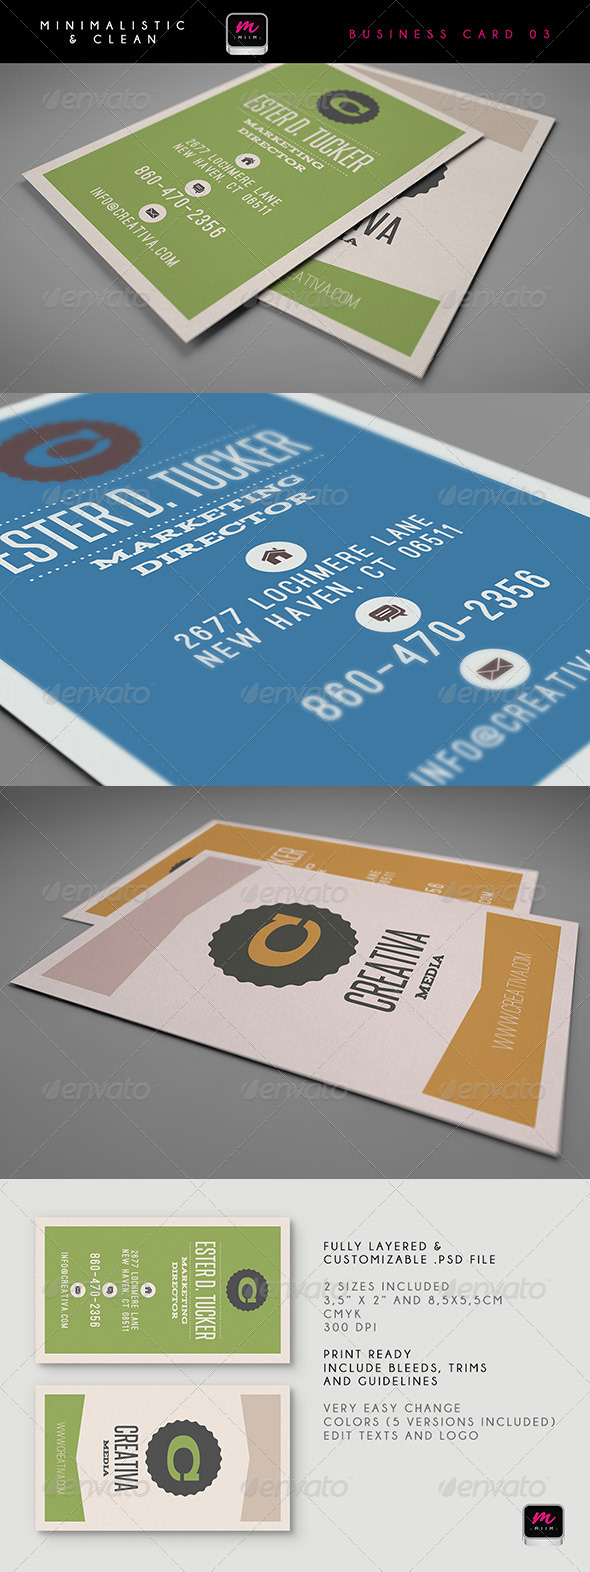 Clean Business Card Template 04 - Retro/Vintage Business Cards